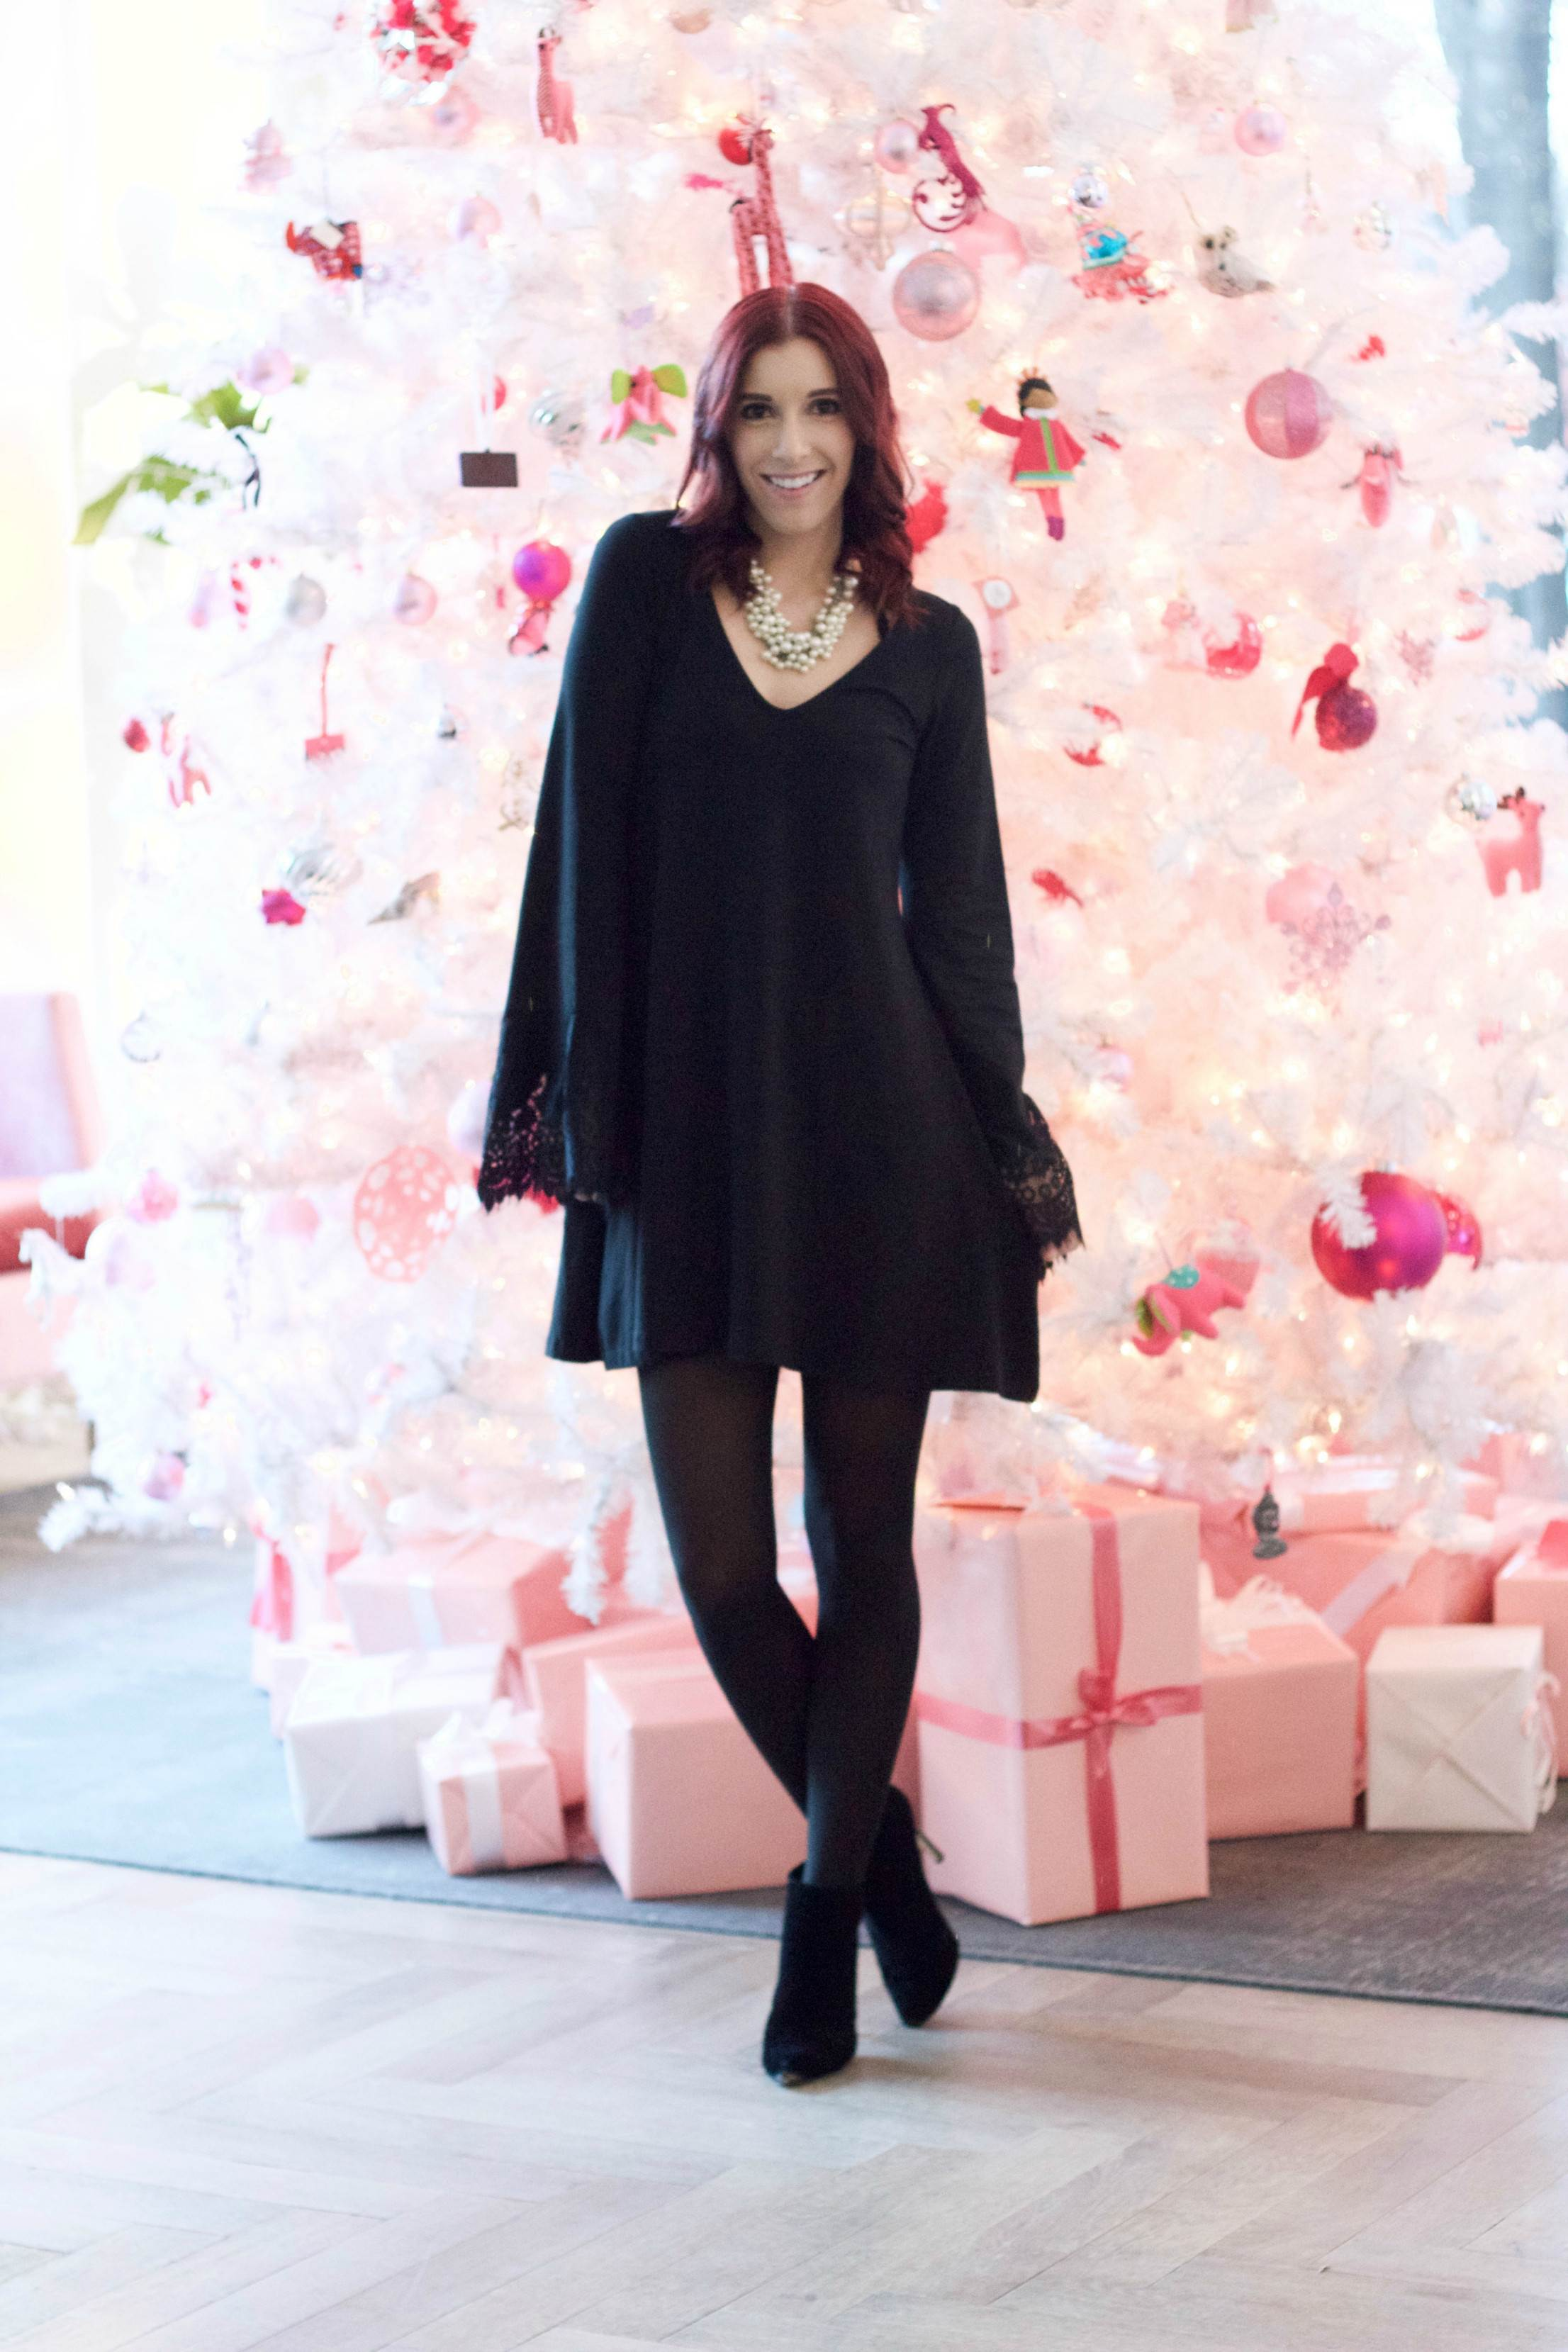 A Very Berry Christmas Backdrop: Pink Trees and LBDs // She Saw Style